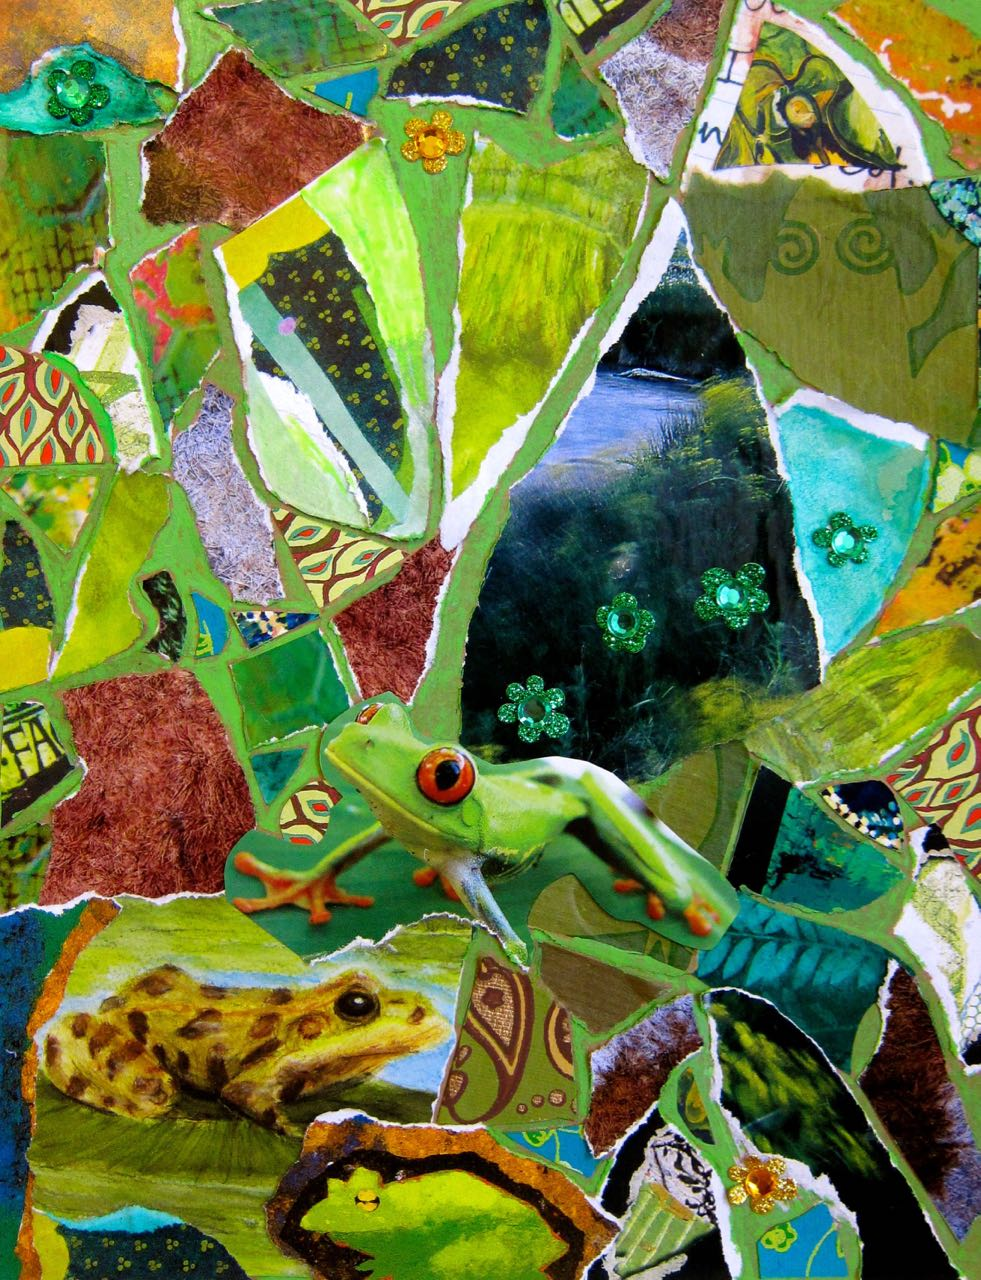 Frogs' Mosaic Green Room, Catherine Raine 2013